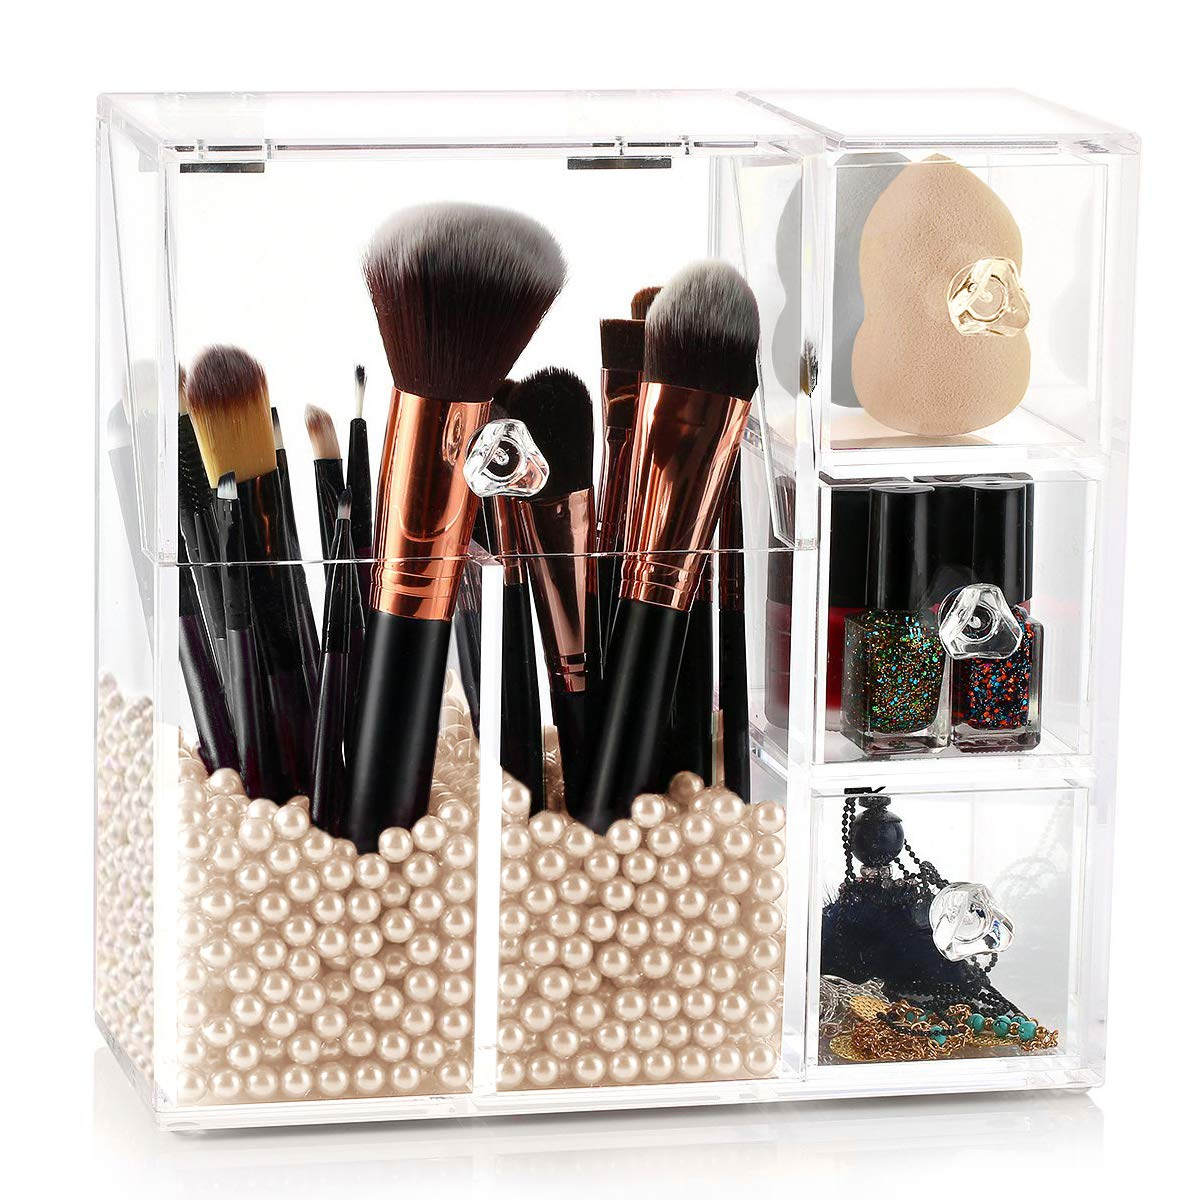 hblife Makeup Brush Holder, Acrylic Makeup Organizer with 2 Brush Holders and 3 Drawers Dustproof Box with Free Beige Pearl